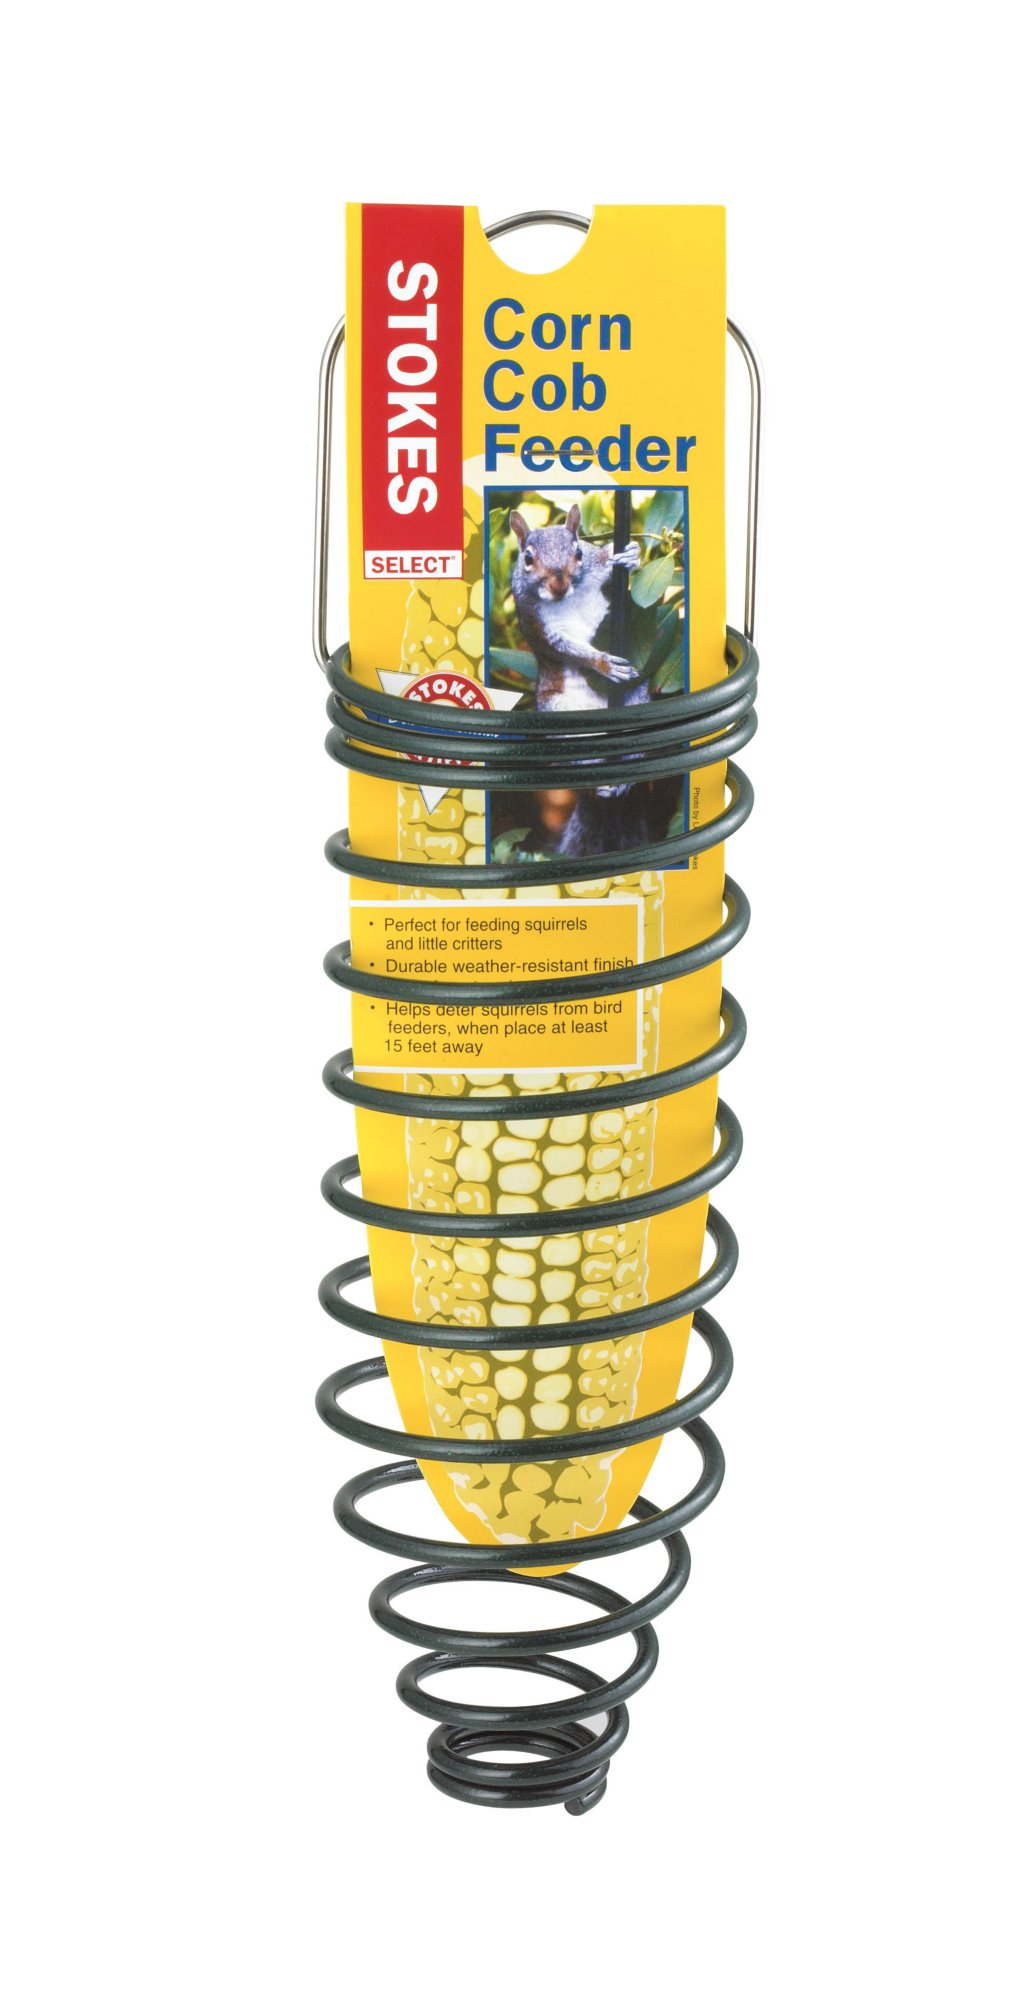 Stokes Select Corn Cob Feeder